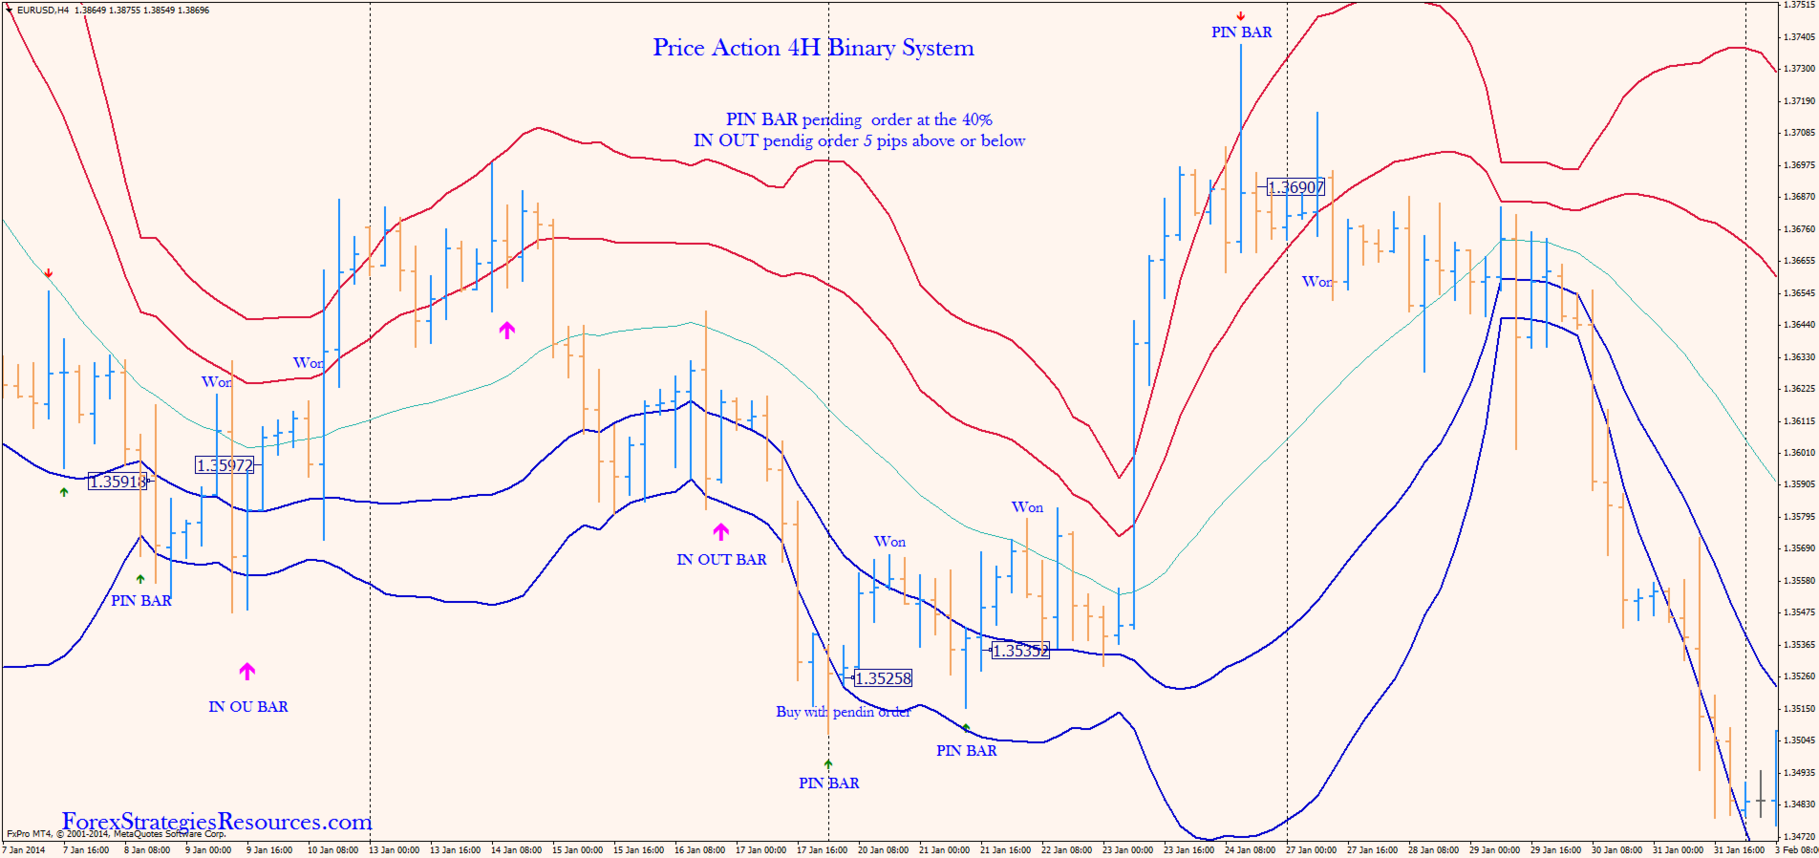 Best price action strategy for binary options